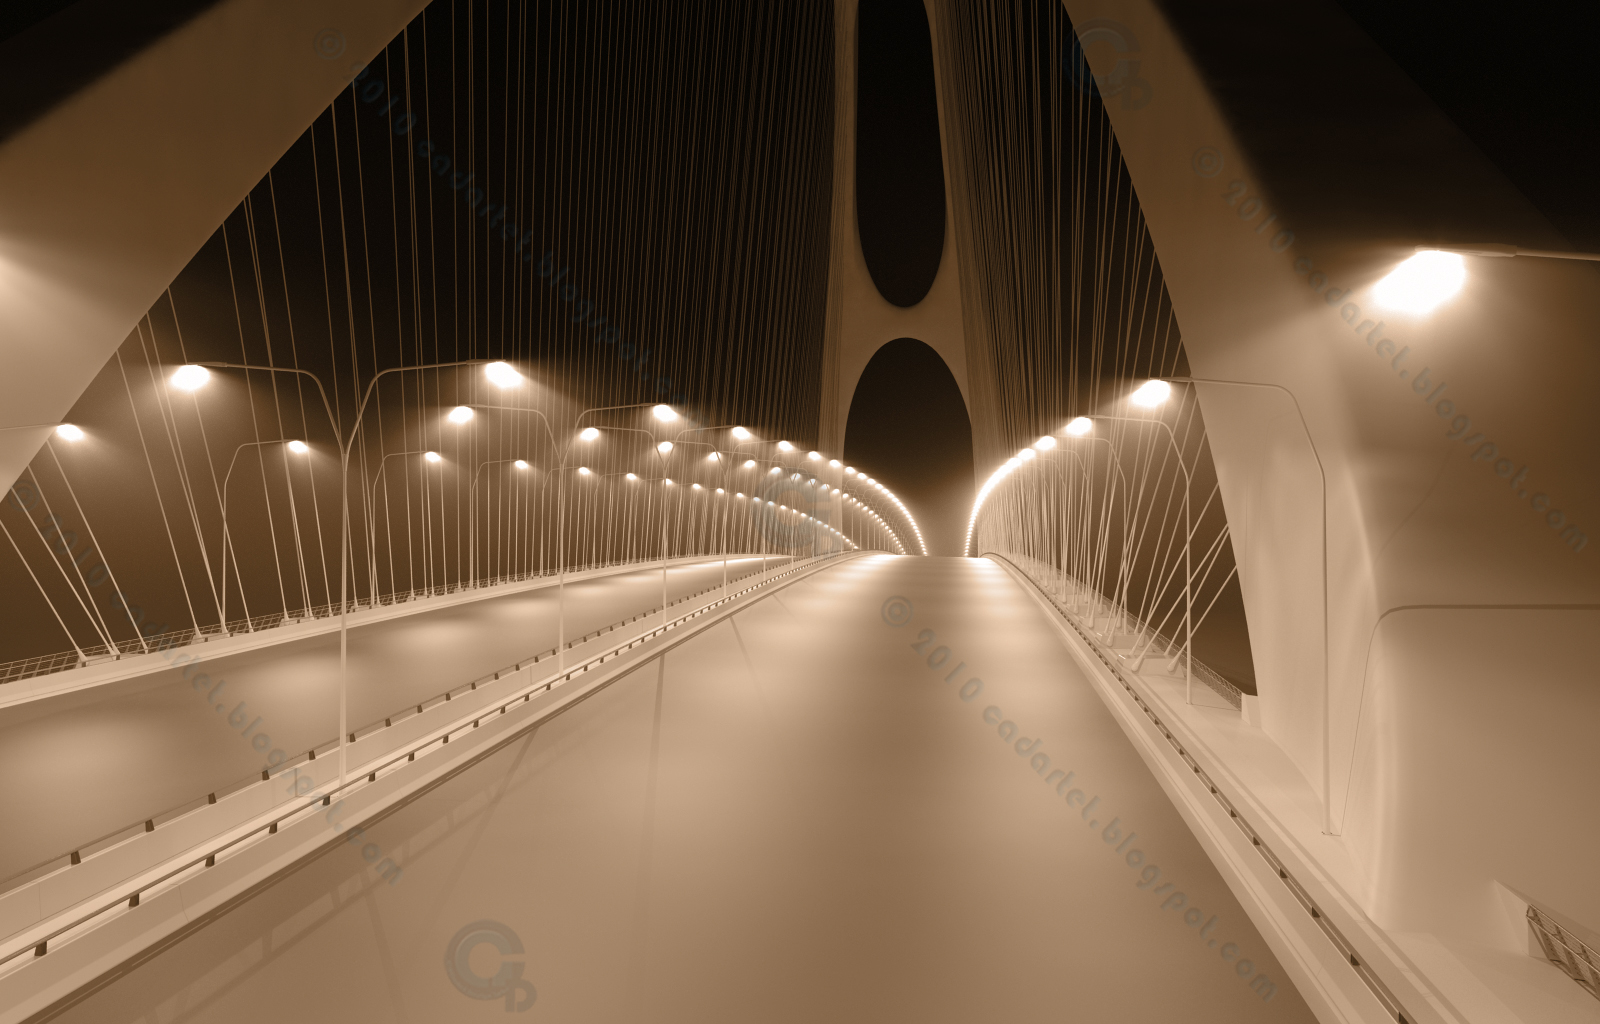 cadartet boomerang bridge 3d model vray volume lights 3dsmax